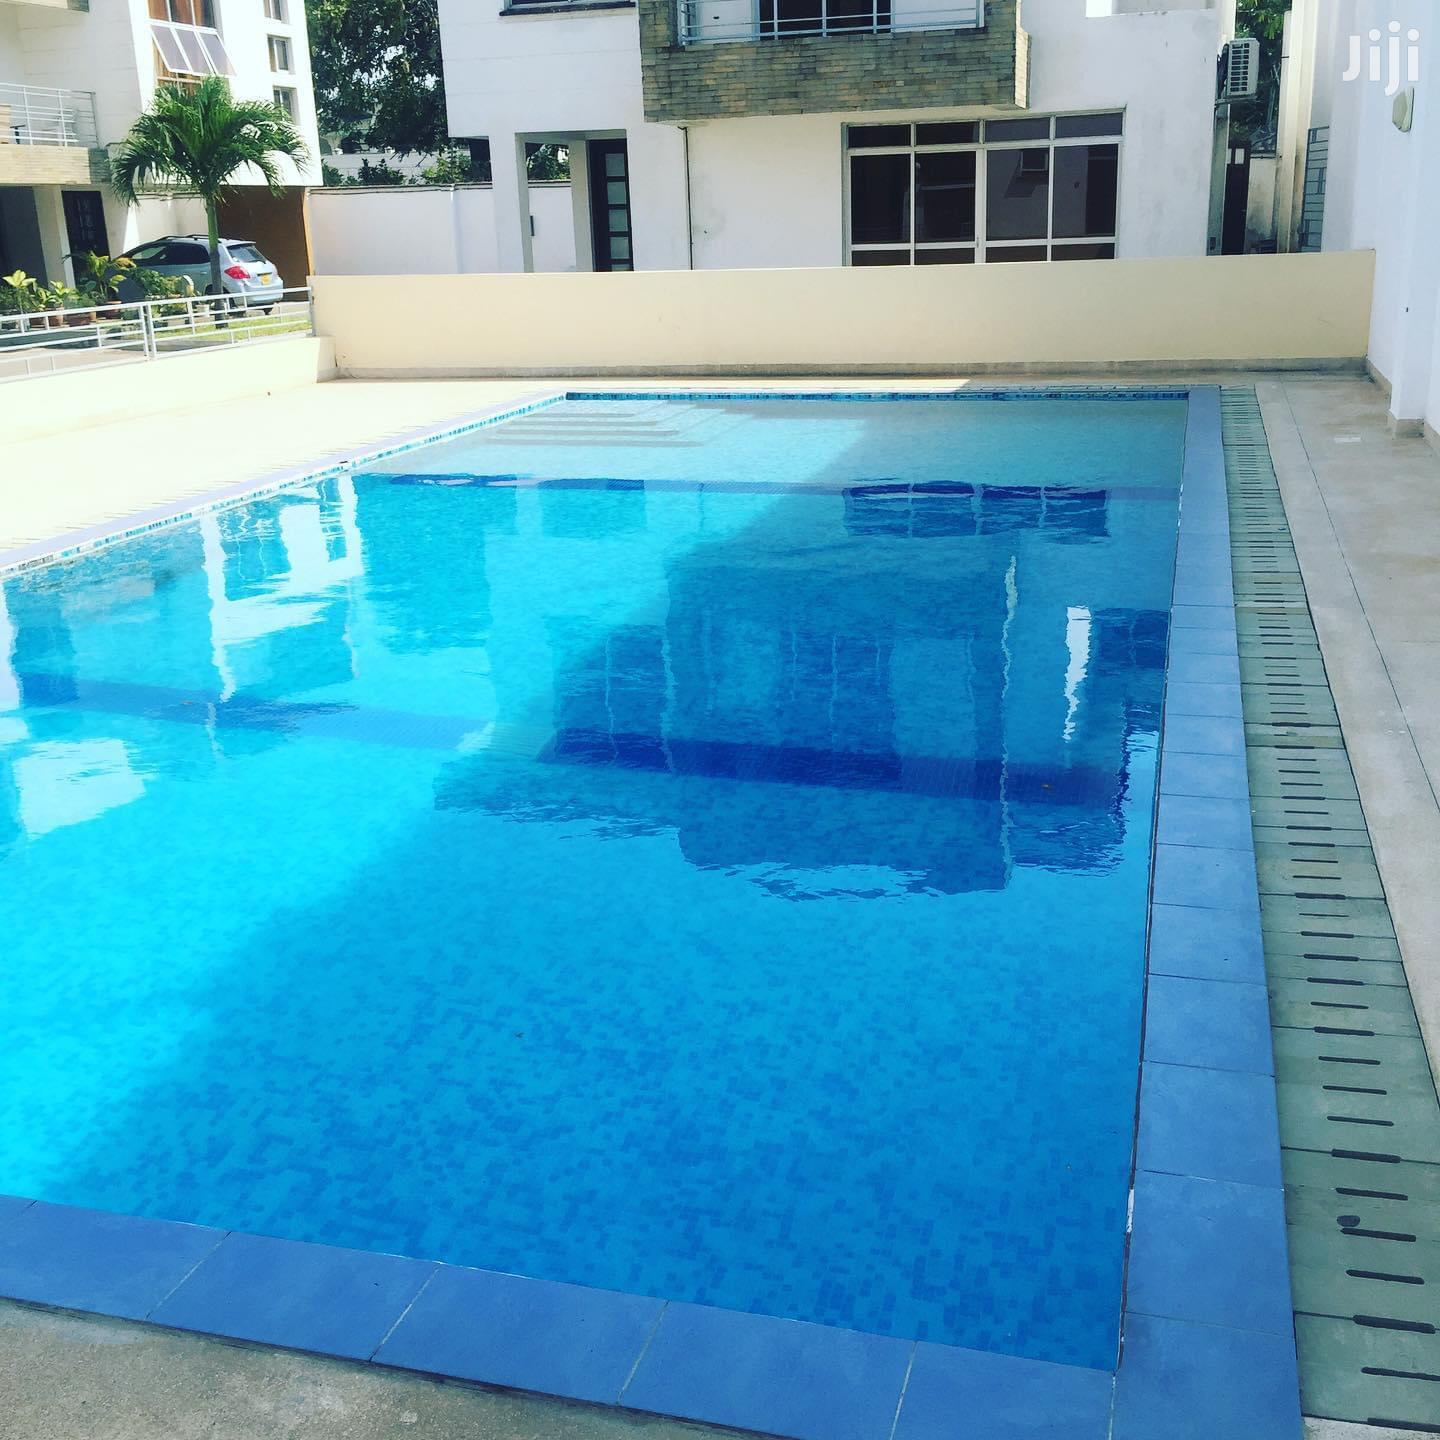 Archive: 3 Bedroom Duplex Apartment In Nyali Mombasa For Short Let